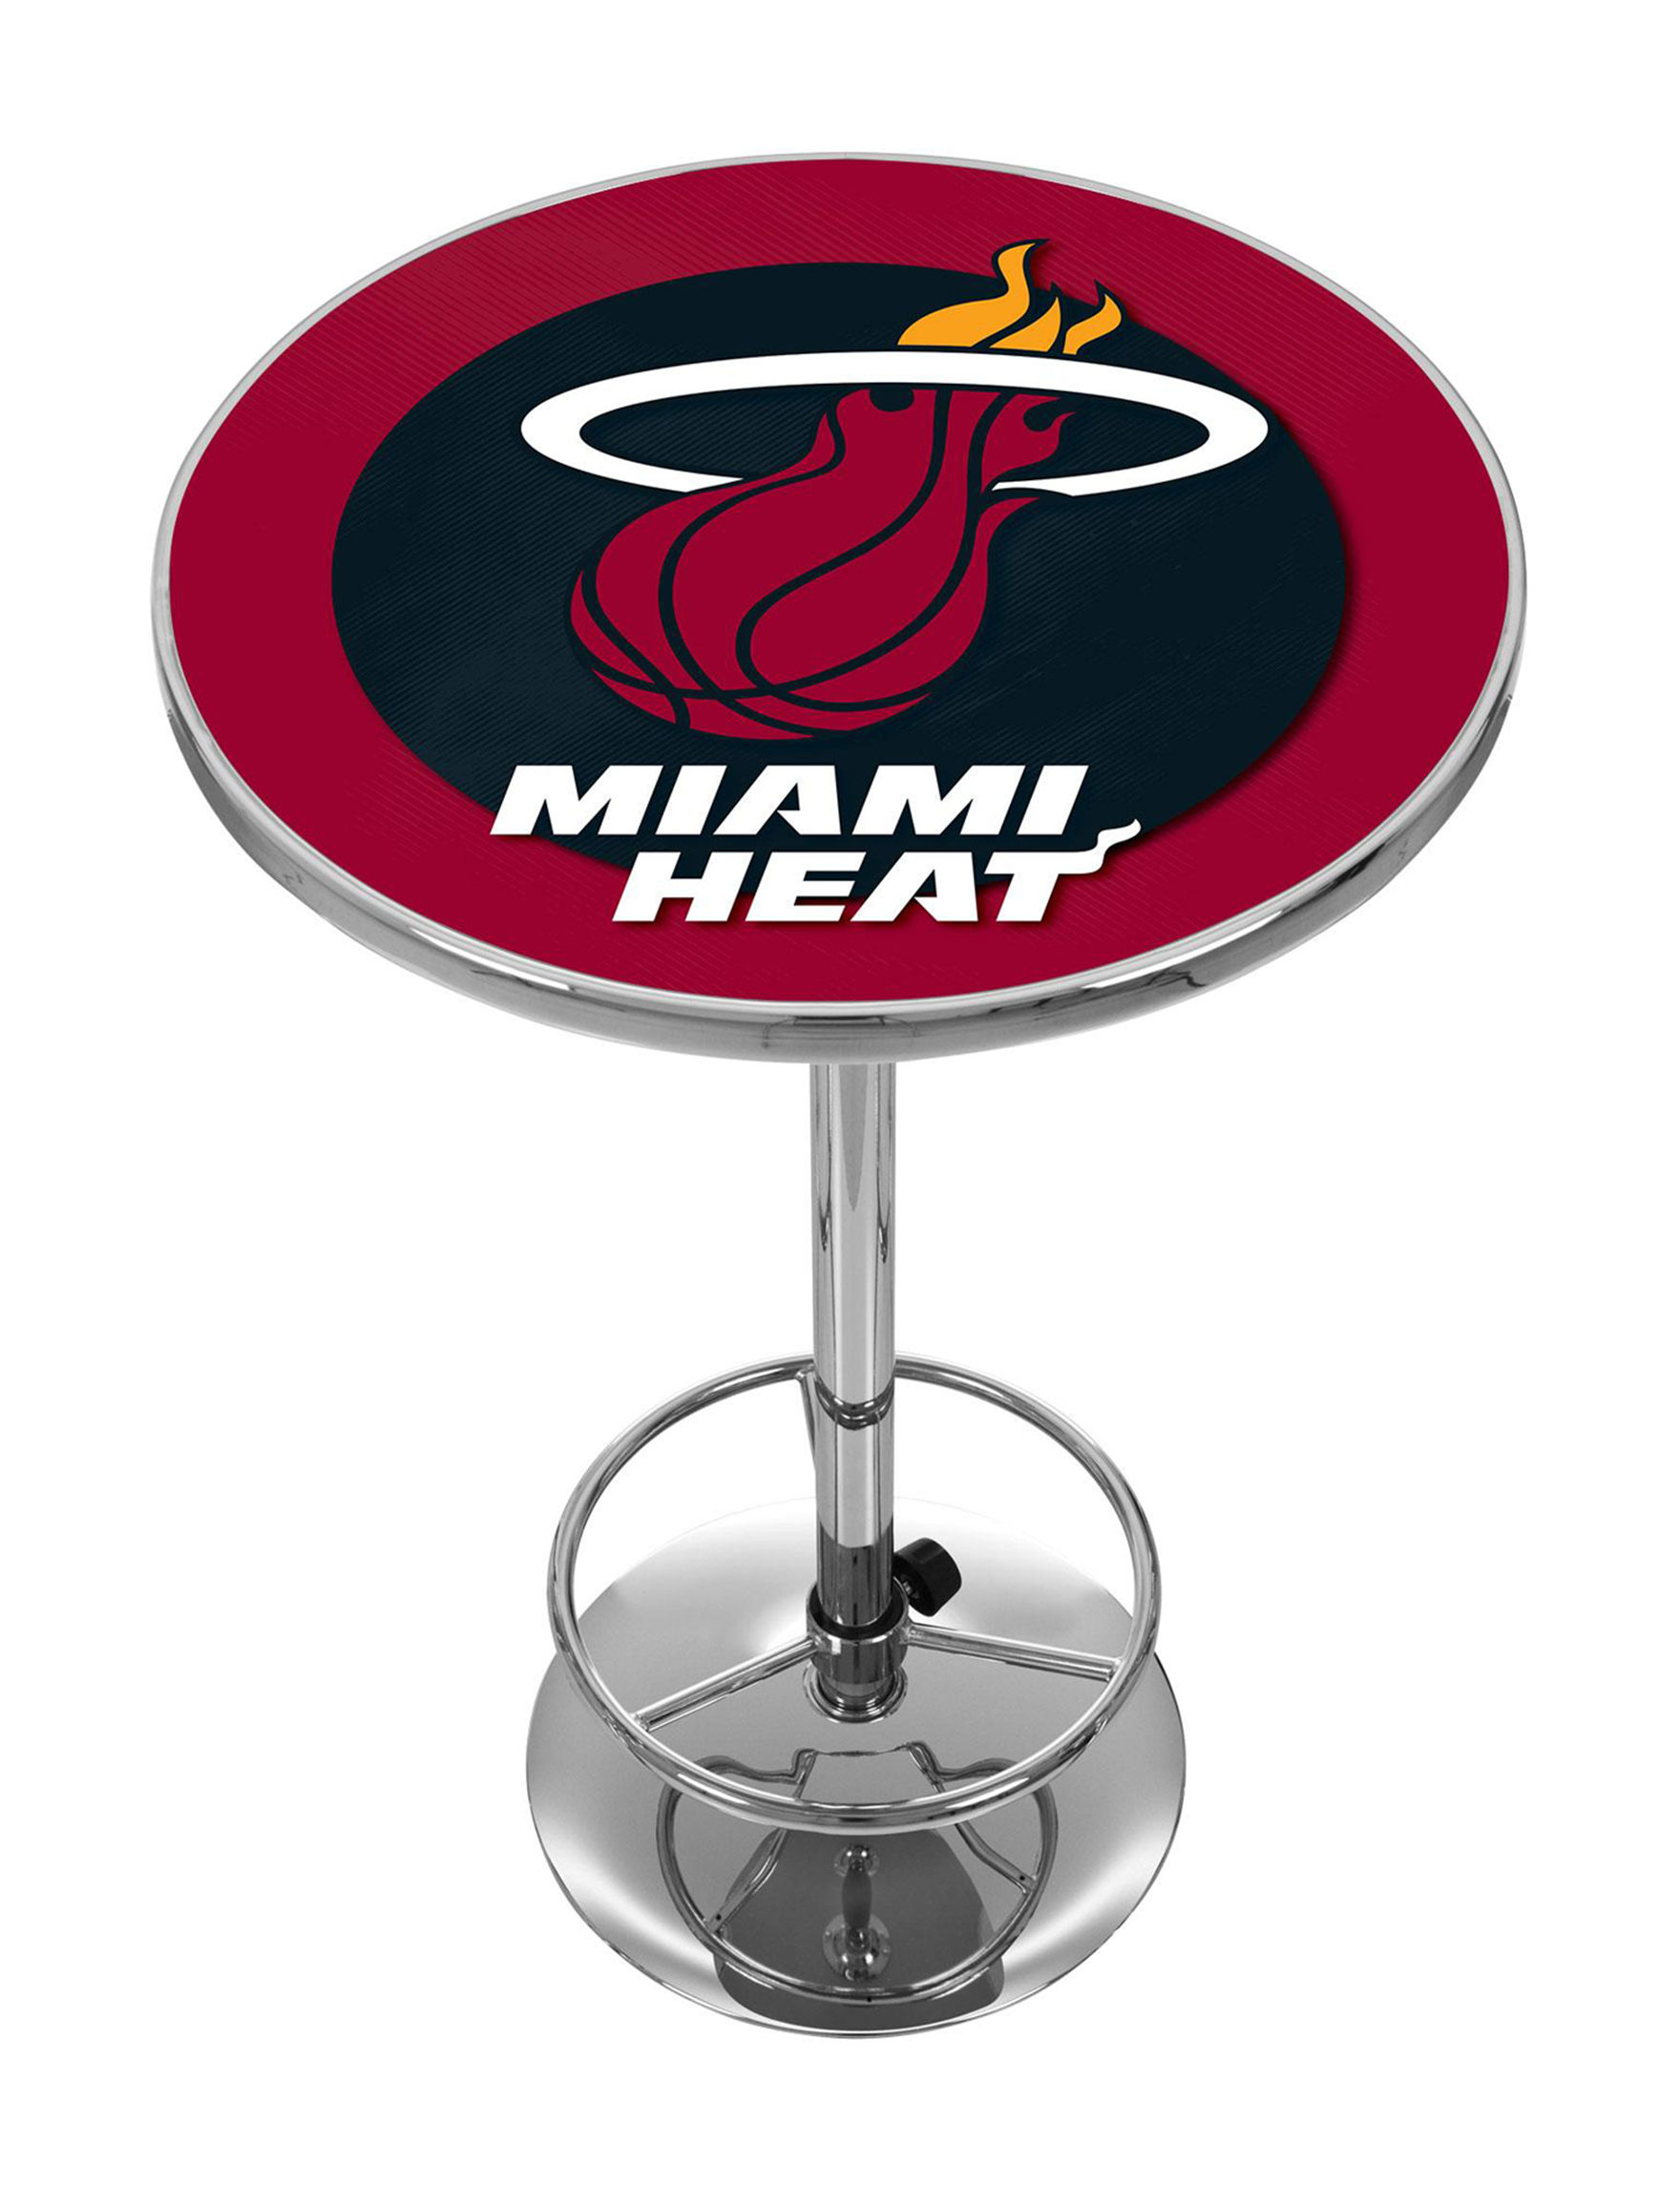 NBA Red / Black / White Dining Tables Kitchen & Dining Furniture NBA